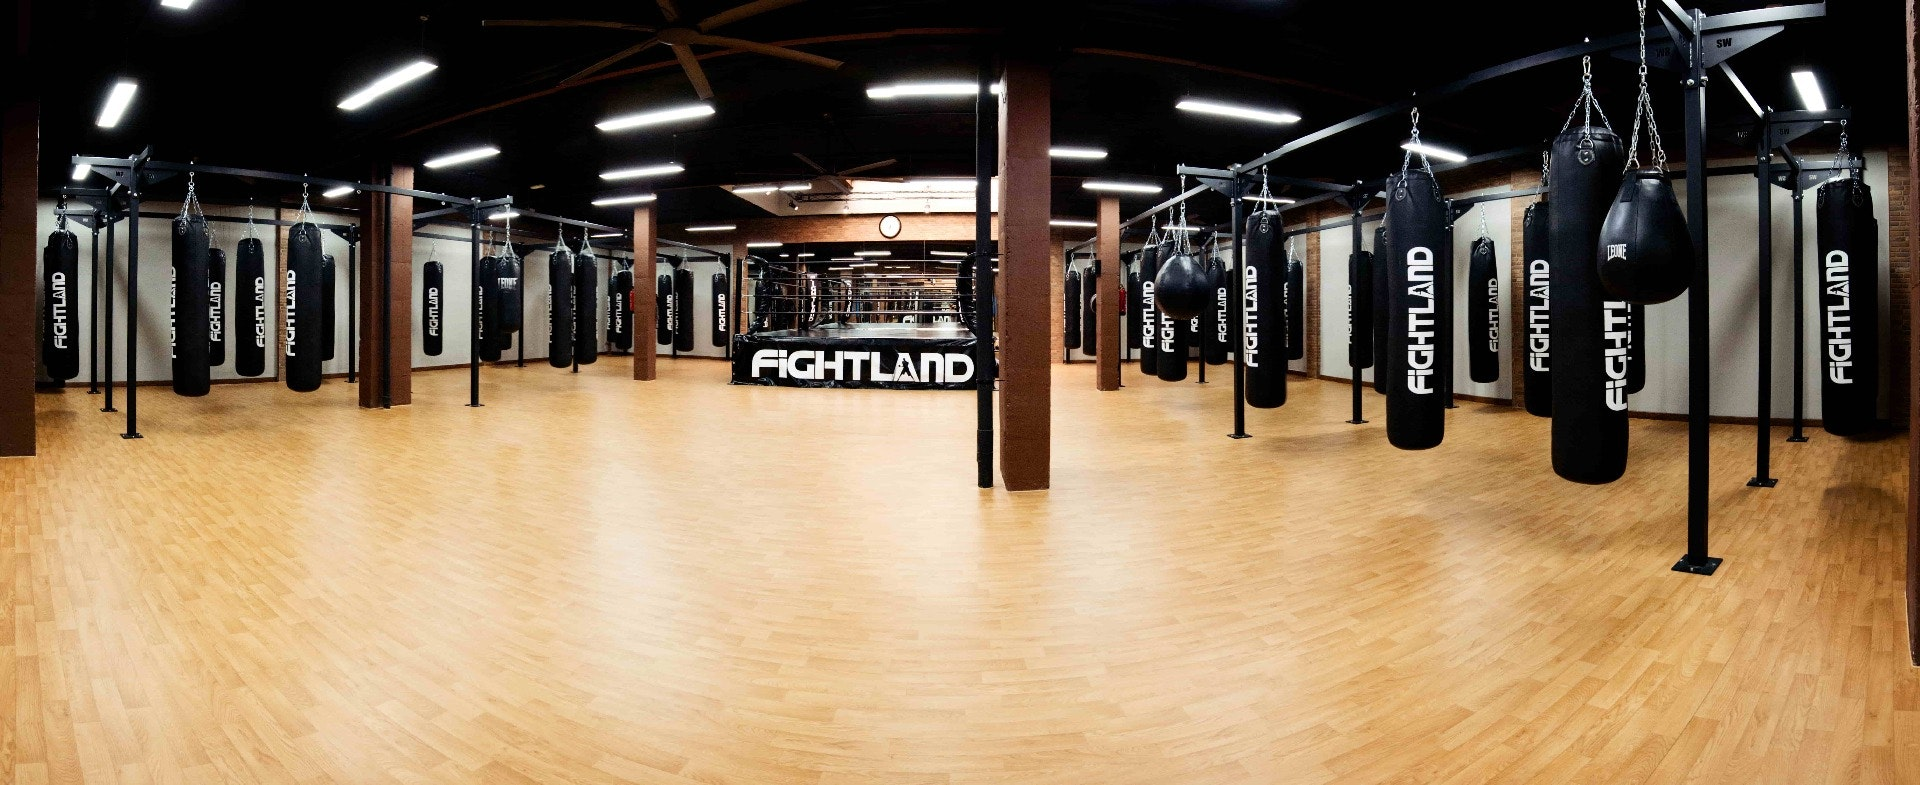 Fightland Azca